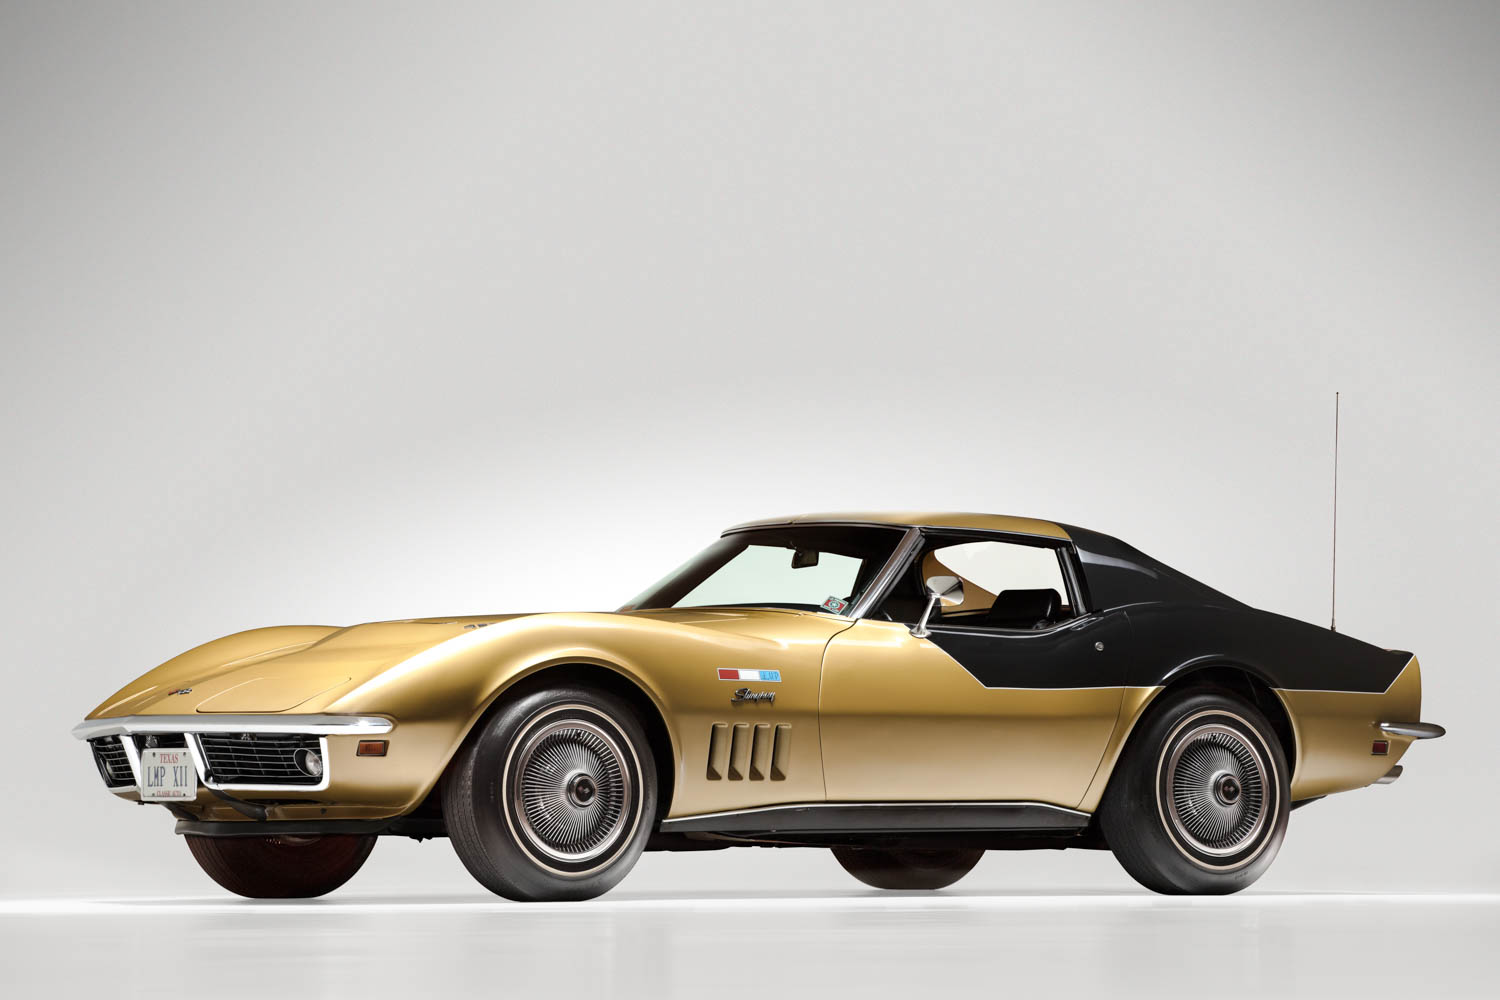 Alan Bean's 1969 Chevrolet Corvette